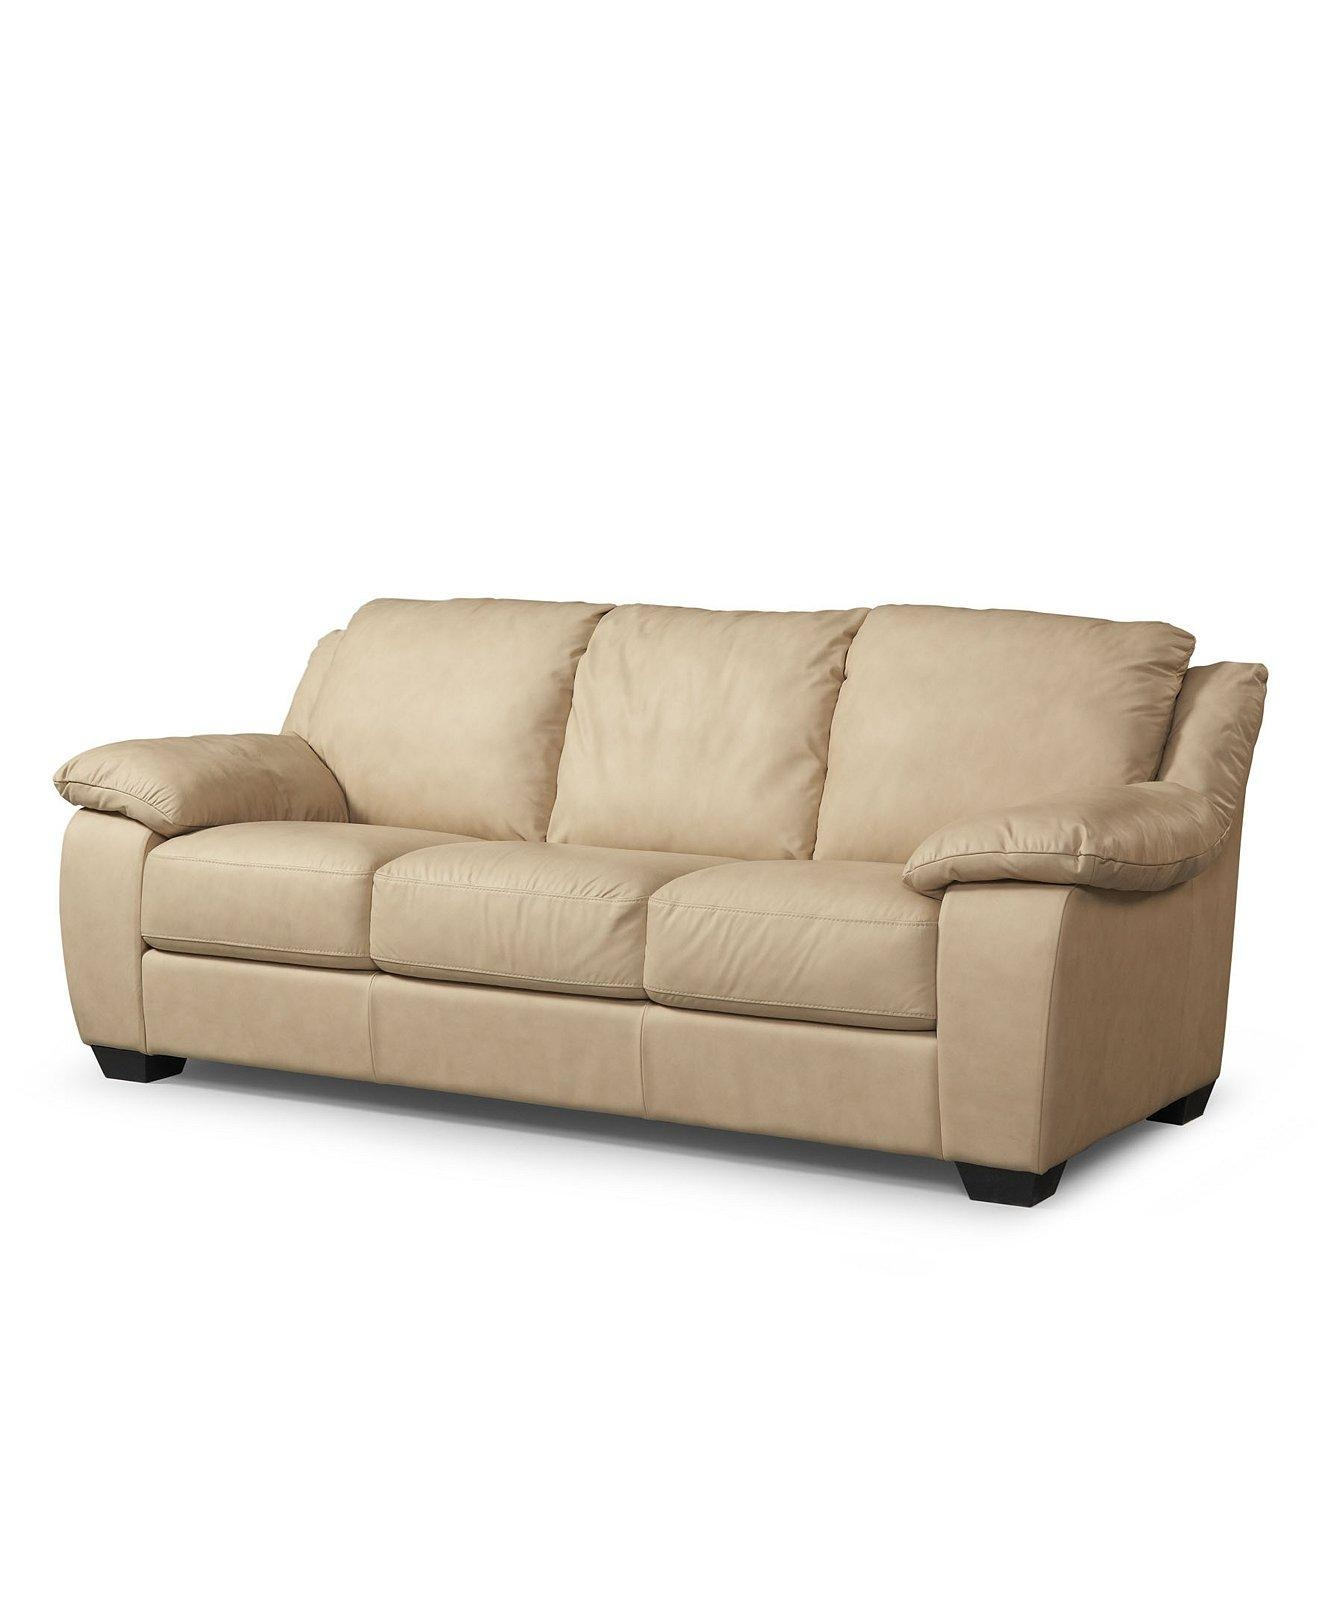 sofas at macys sofa futons 20 best collection of ideas